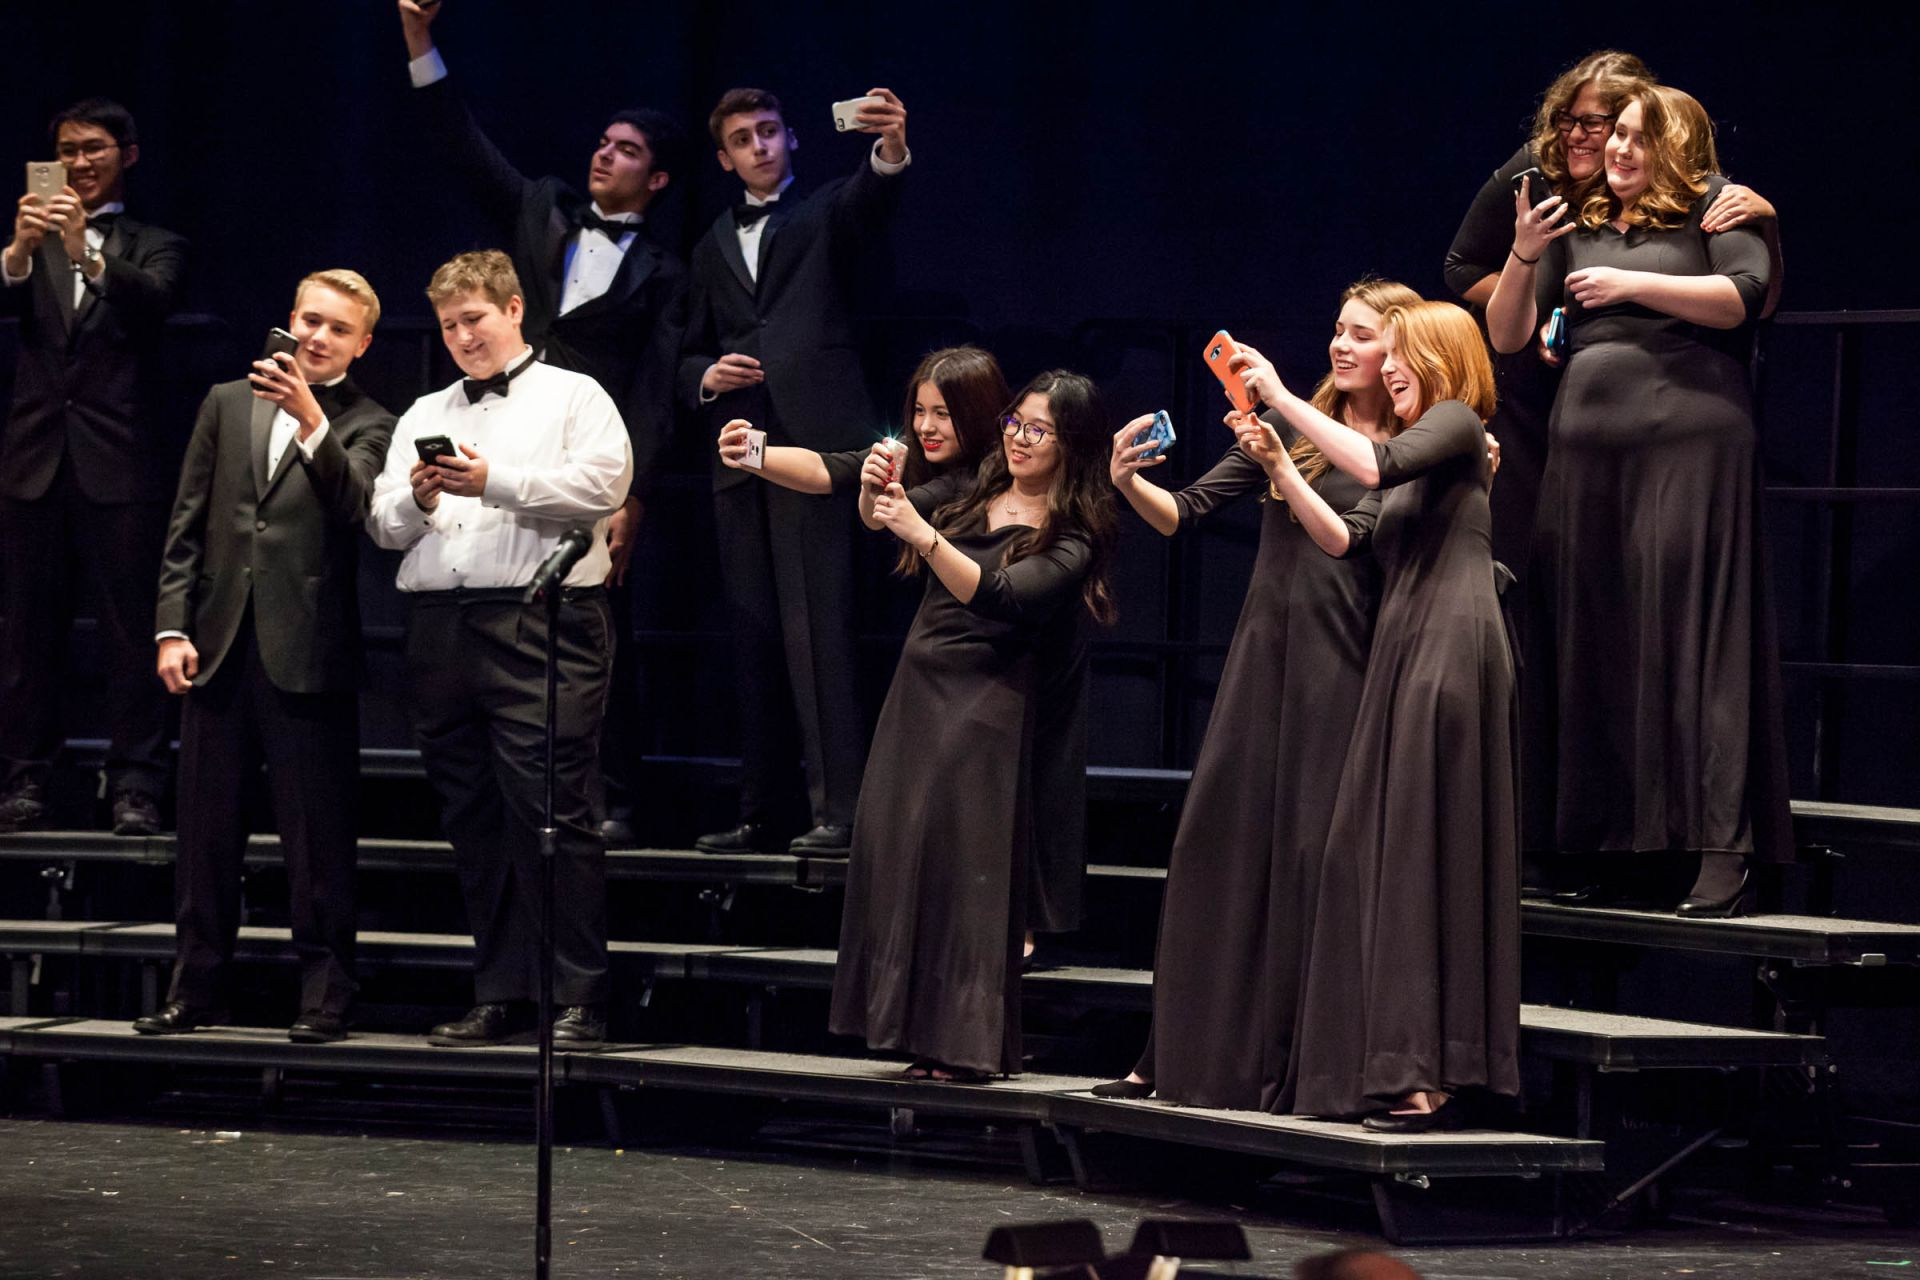 Never far from their phones, upper school students even used the devices as props during the Winter Concert.